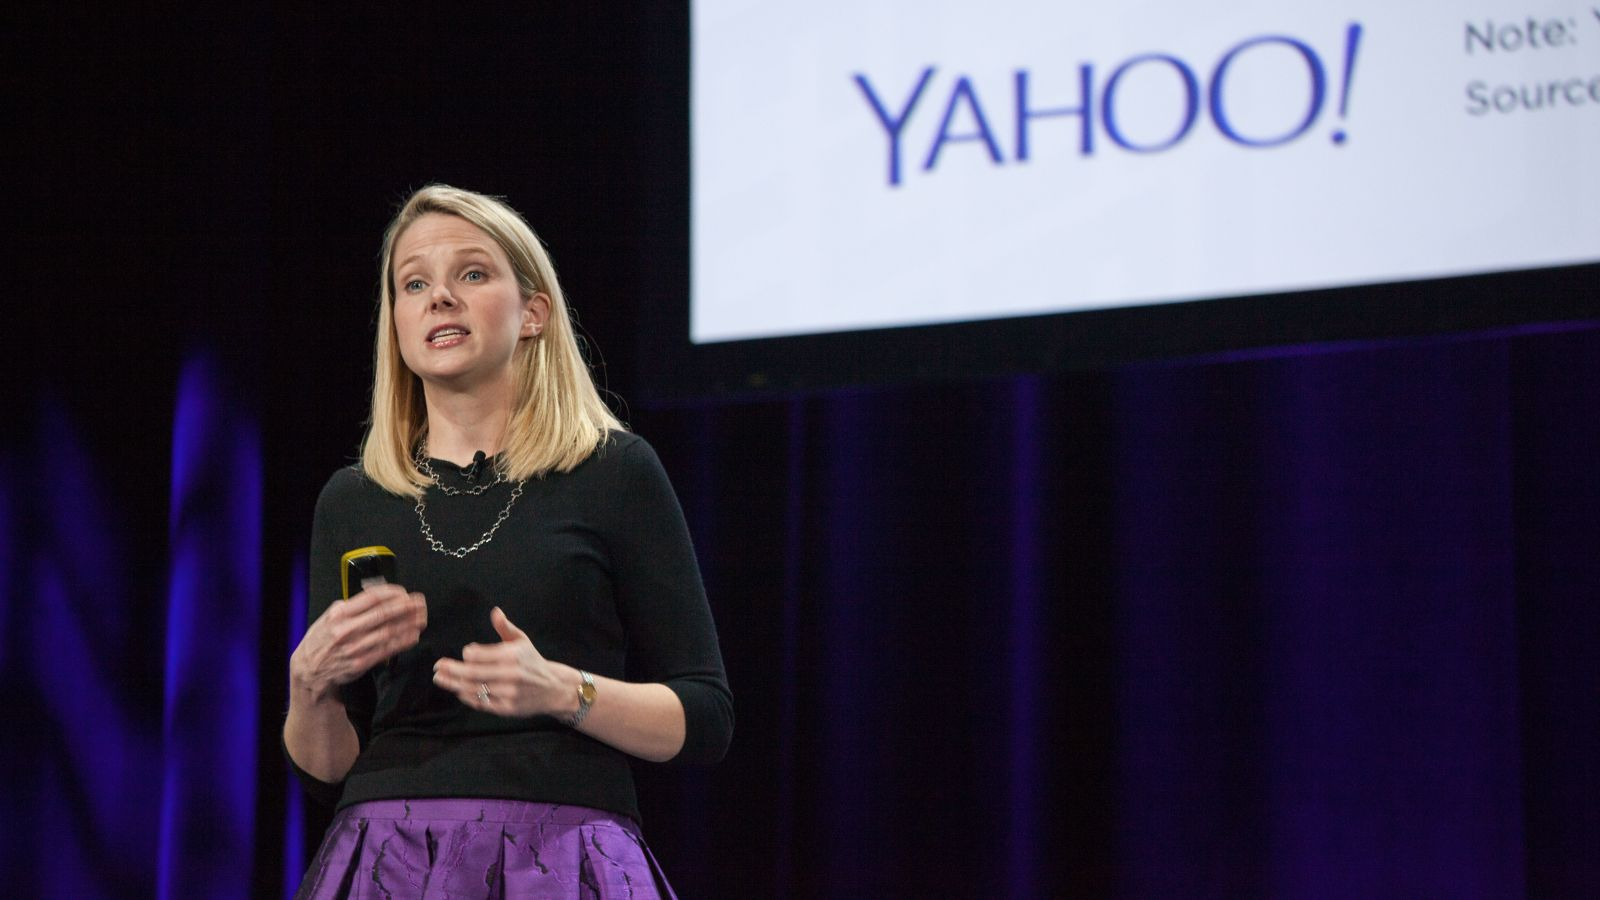 Yahoo To Cut 10% Of Its Workforce To Put The Company On Track